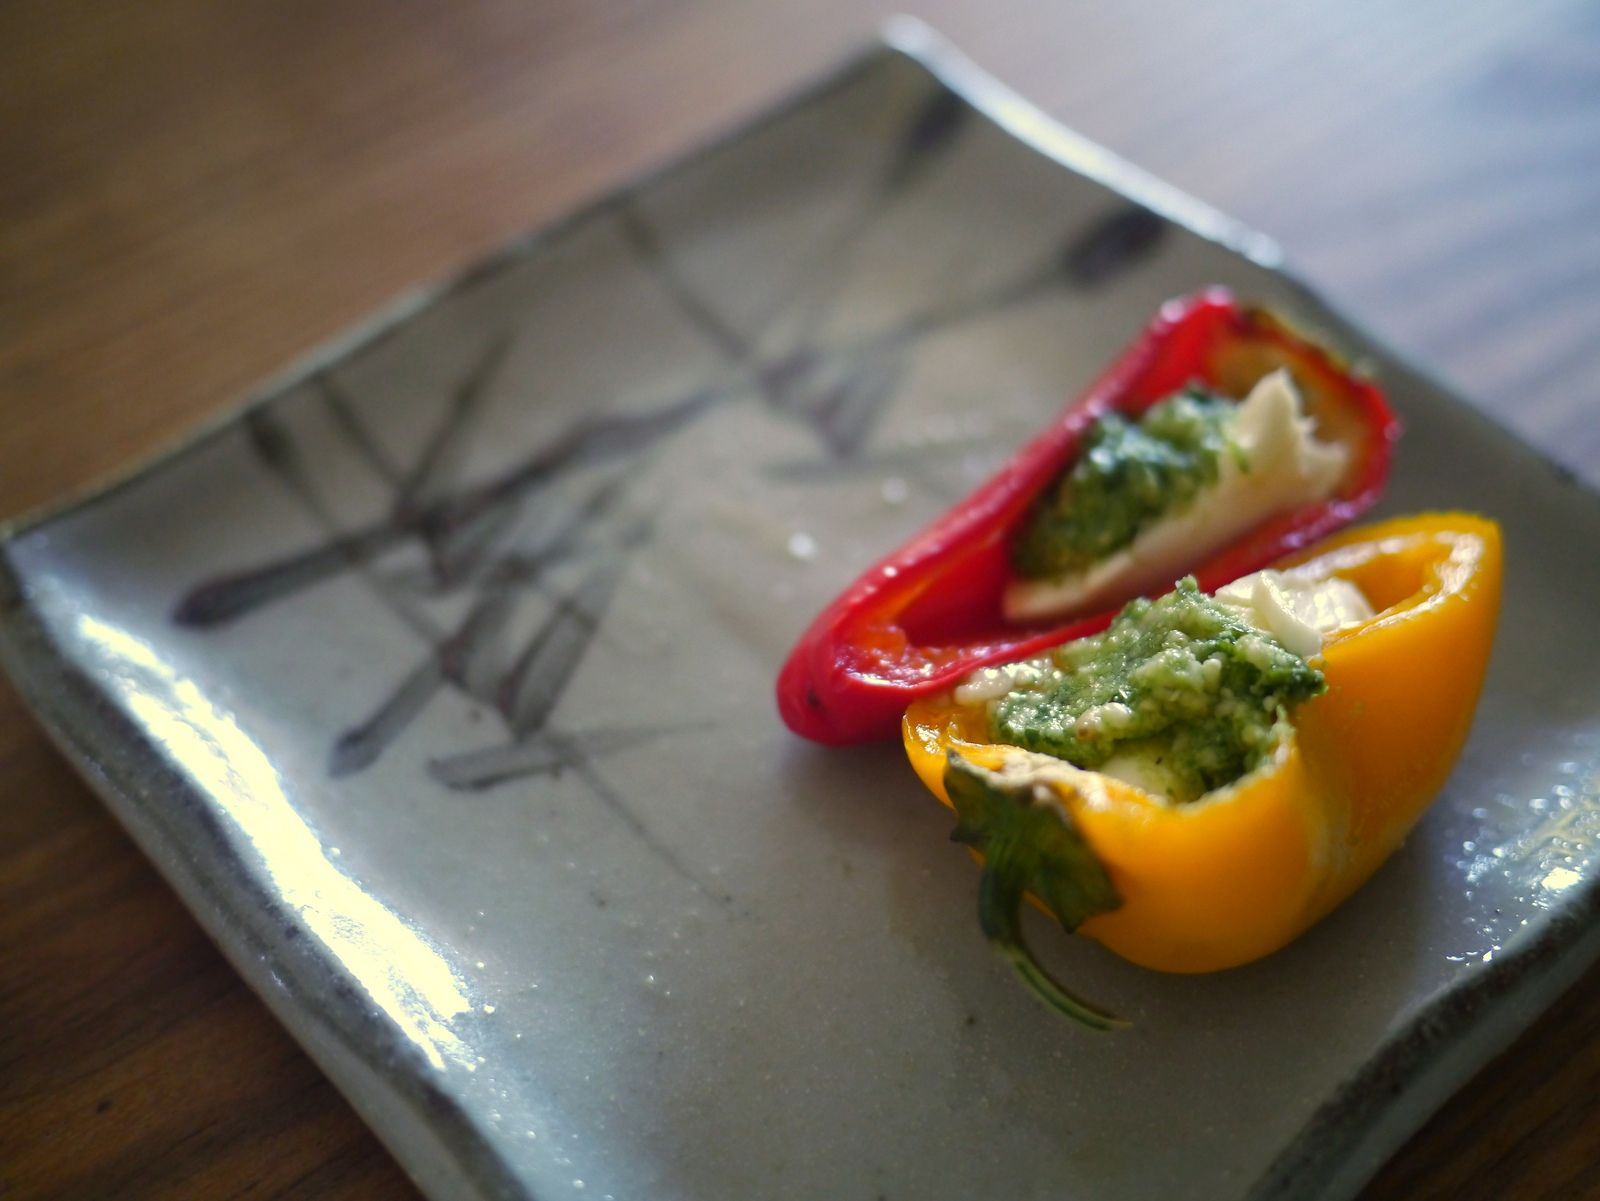 Stuffed Peppers ala Susan